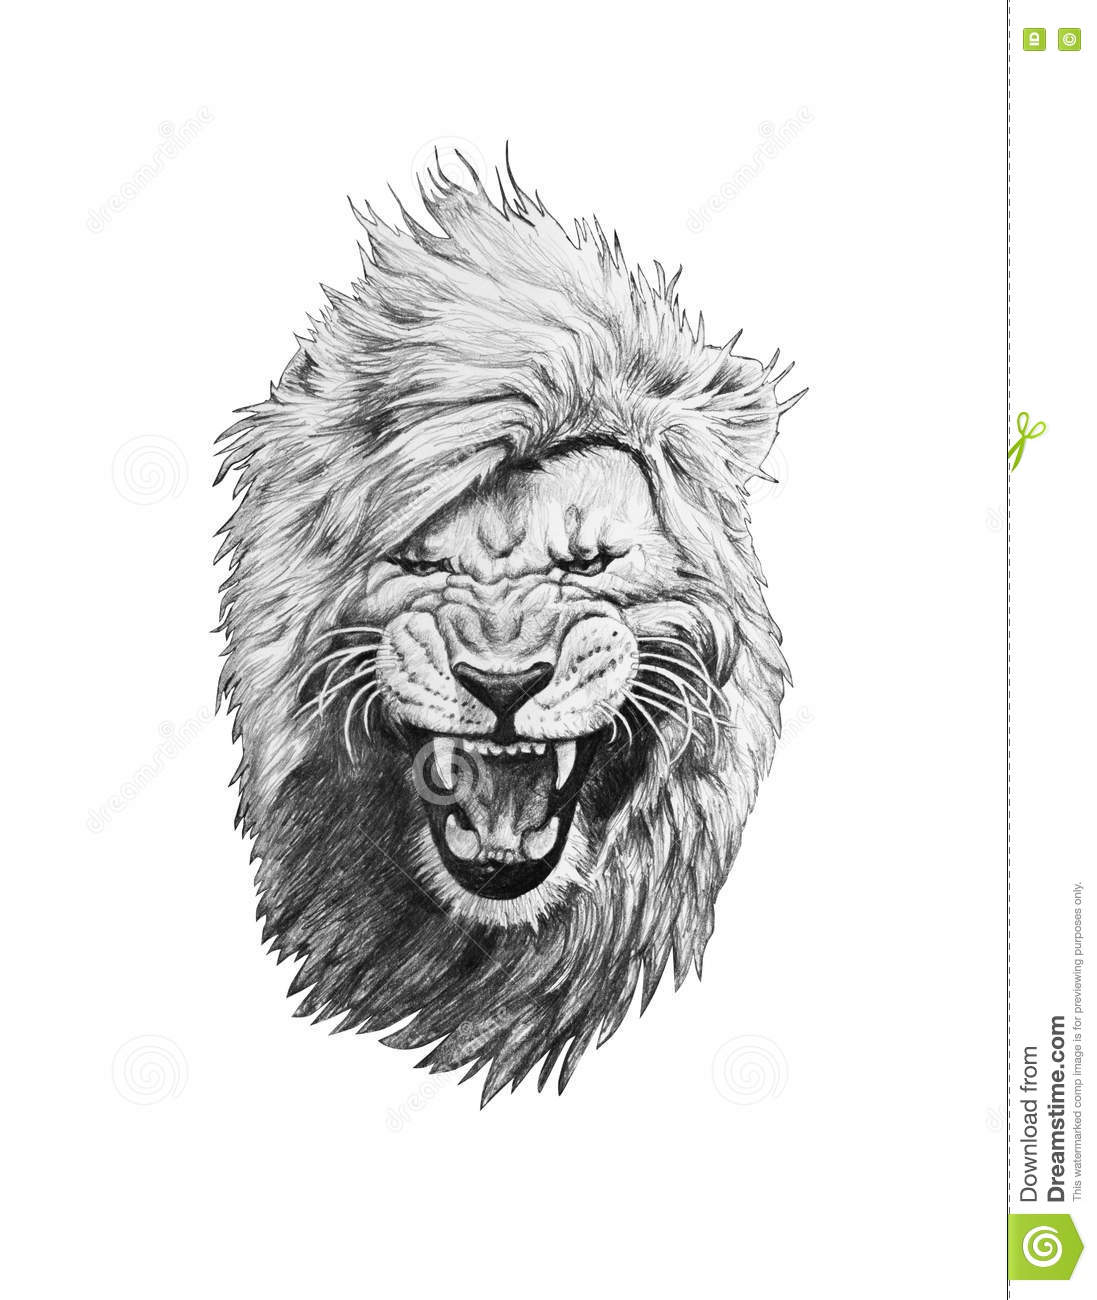 Pencil Drawing Of A Lion Head Stock Illustration Illustration Of Background Face 75074130 There are 114 lion face sketch for sale on etsy, and they cost $11.74 on average. dreamstime com